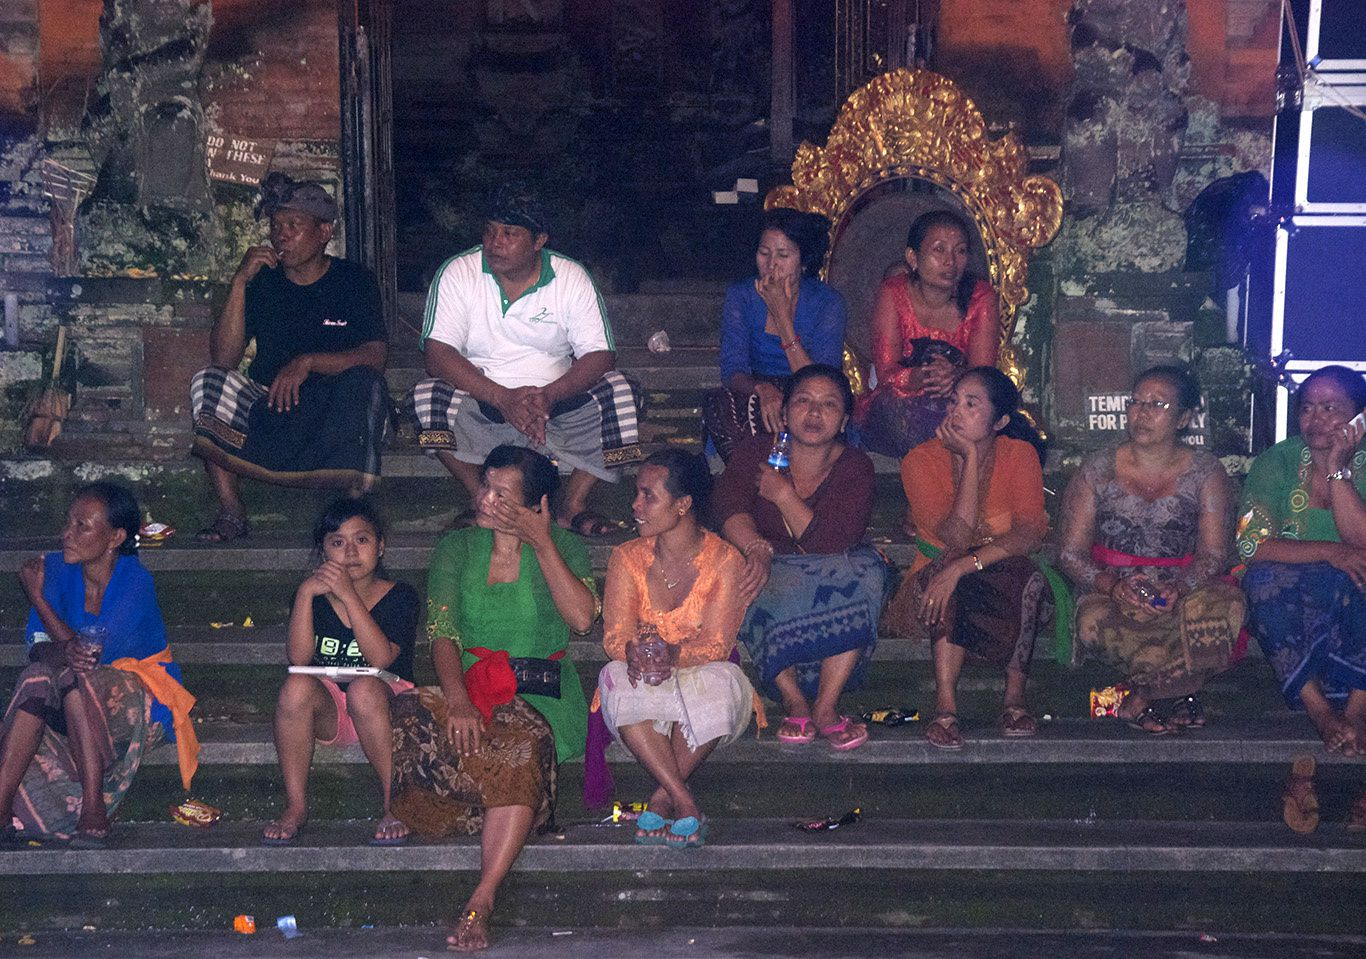 One very long amazing day in Ubud... pics only about the Ogoh-Ogoh during Nyepi and the great Plataran hotel for my Birthday